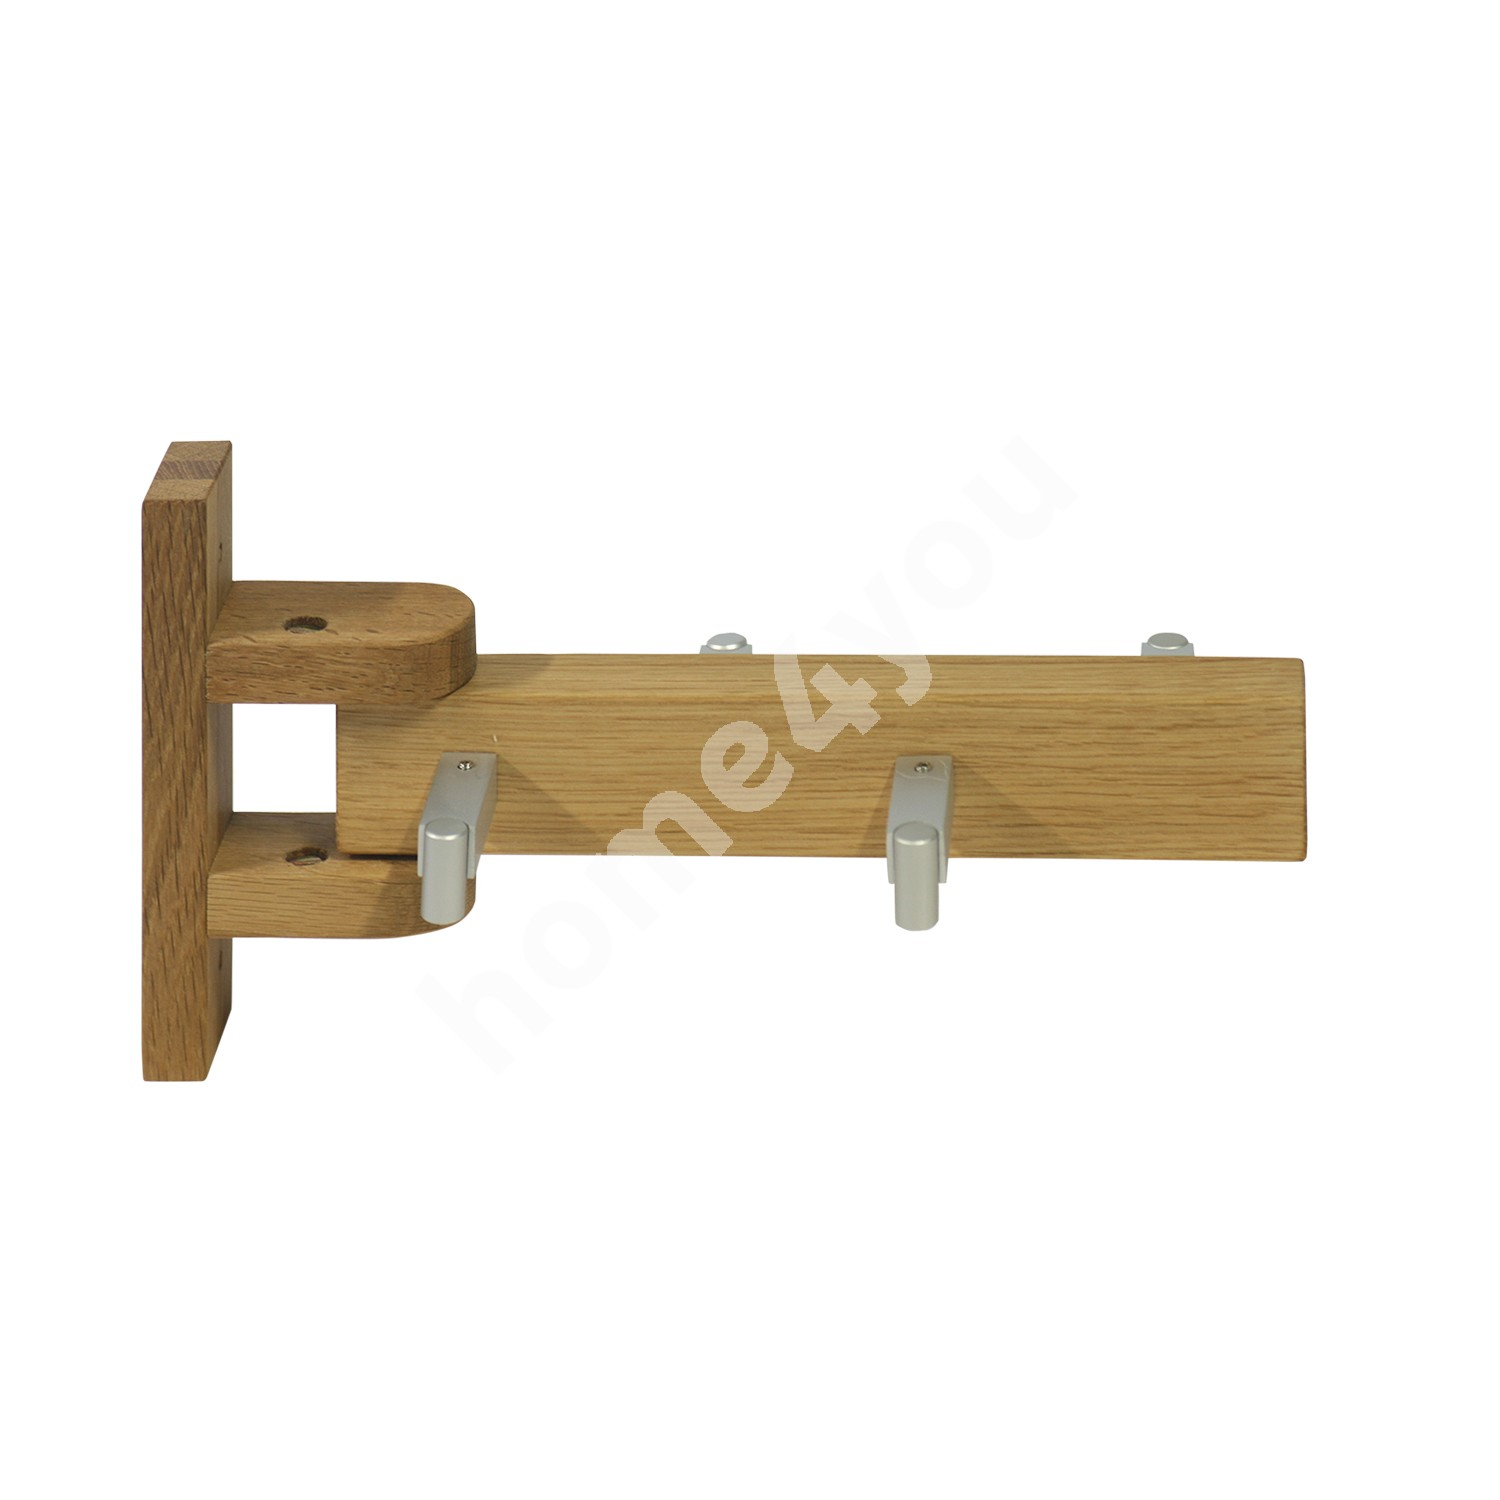 Wall rack MONDEO 26,5xH14cm, with 4 hooks, wood: oak, finish: oiled